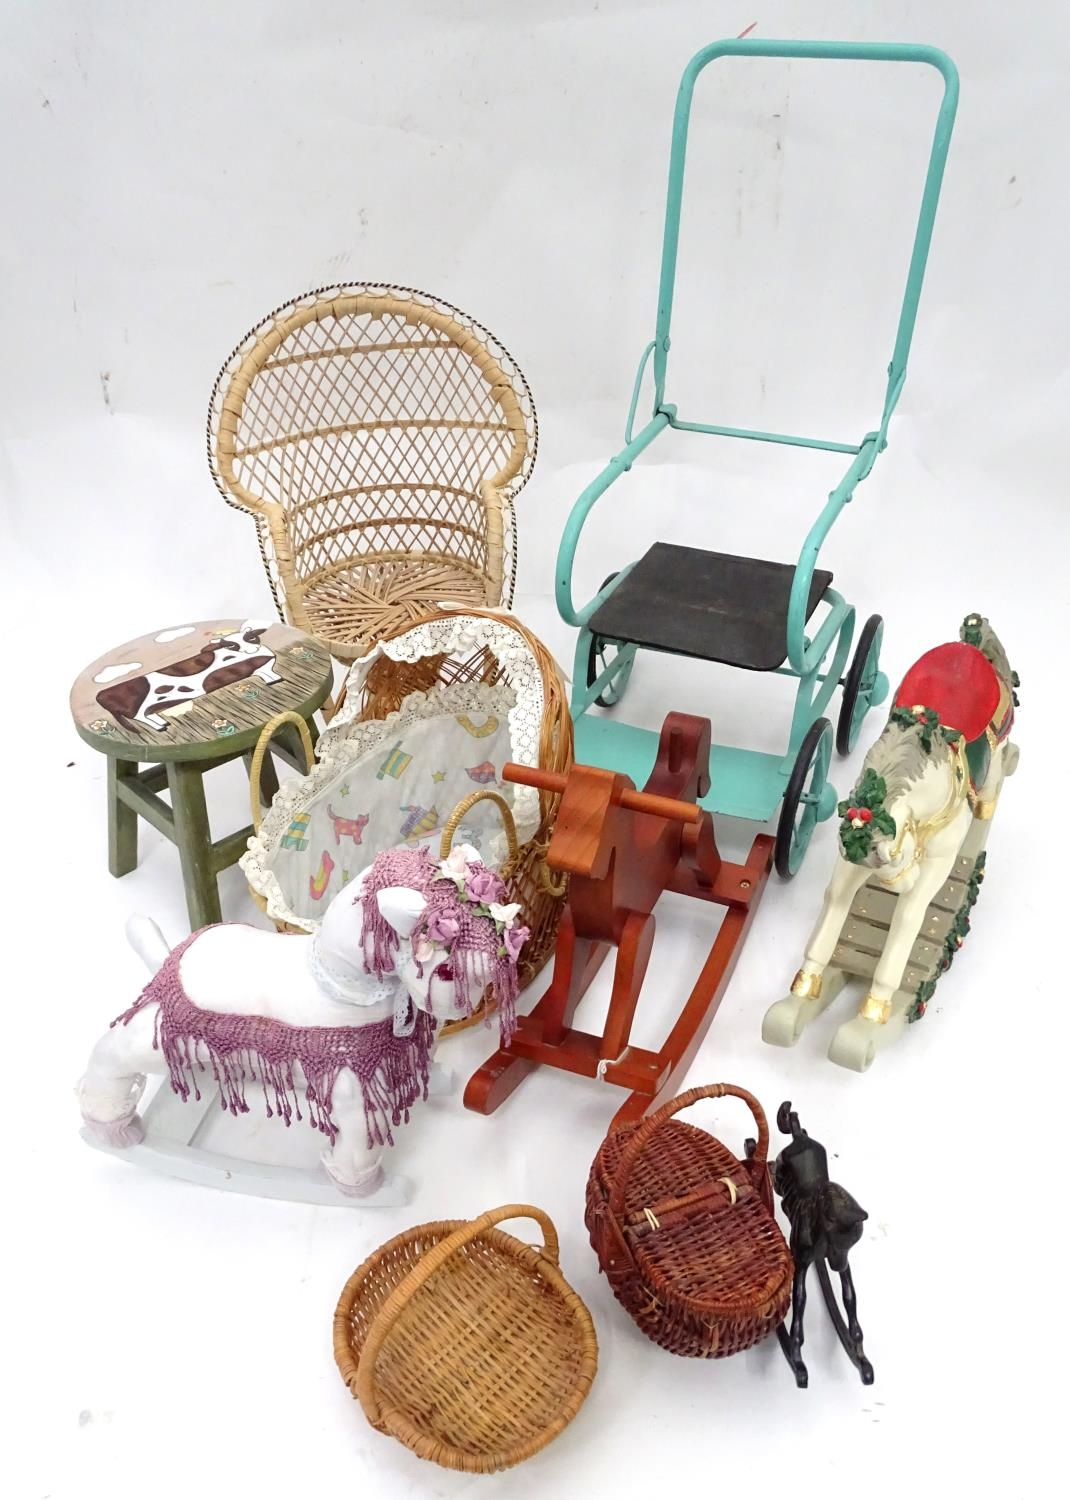 A quantity of dolls items to include a pram, smalls chairs, stool, etc. Please Note - we do not make